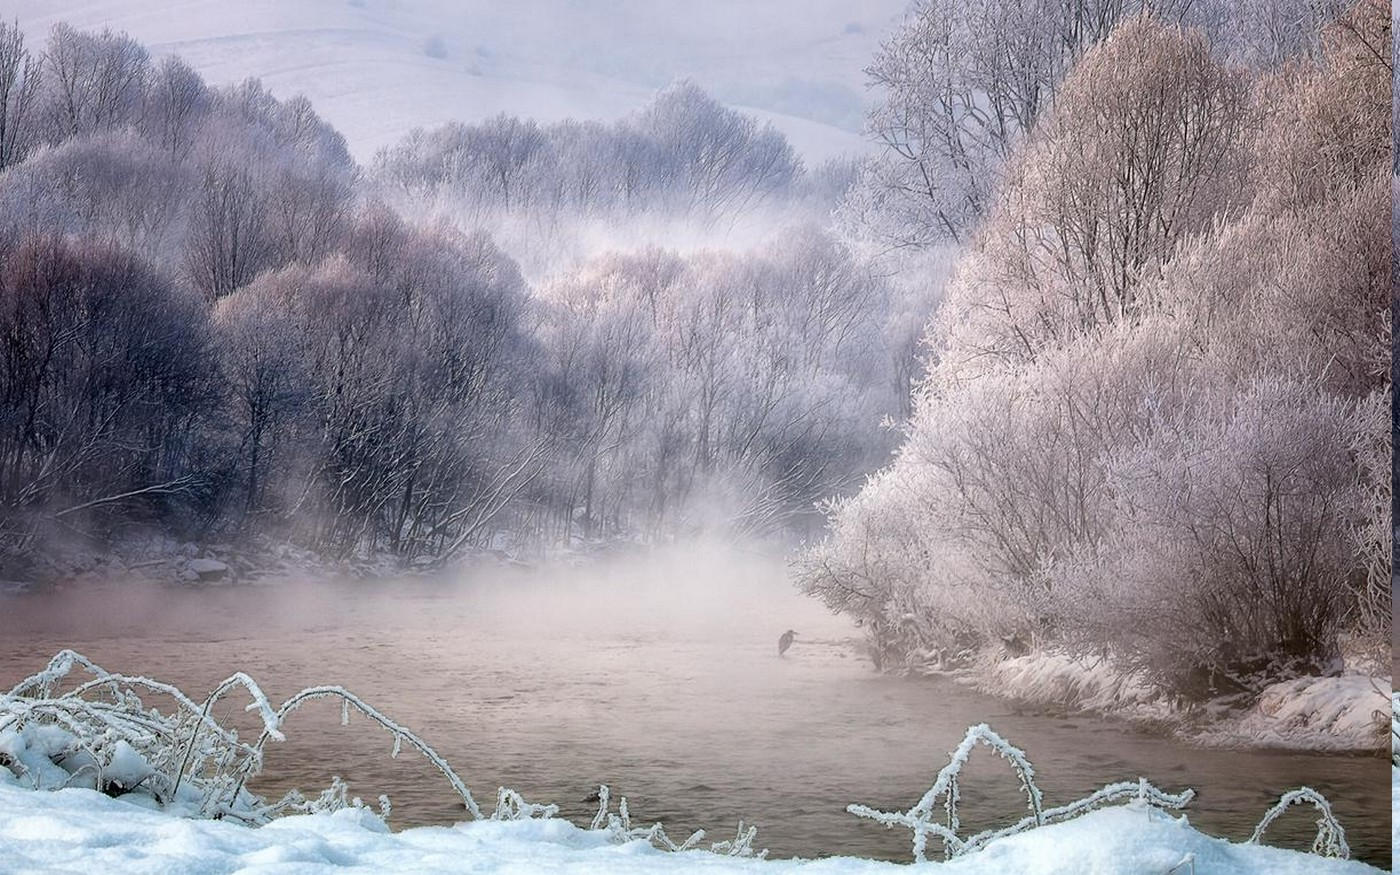 Funny Animated Wallpapers Nature Landscape Winter Mist River Trees Birds Snow